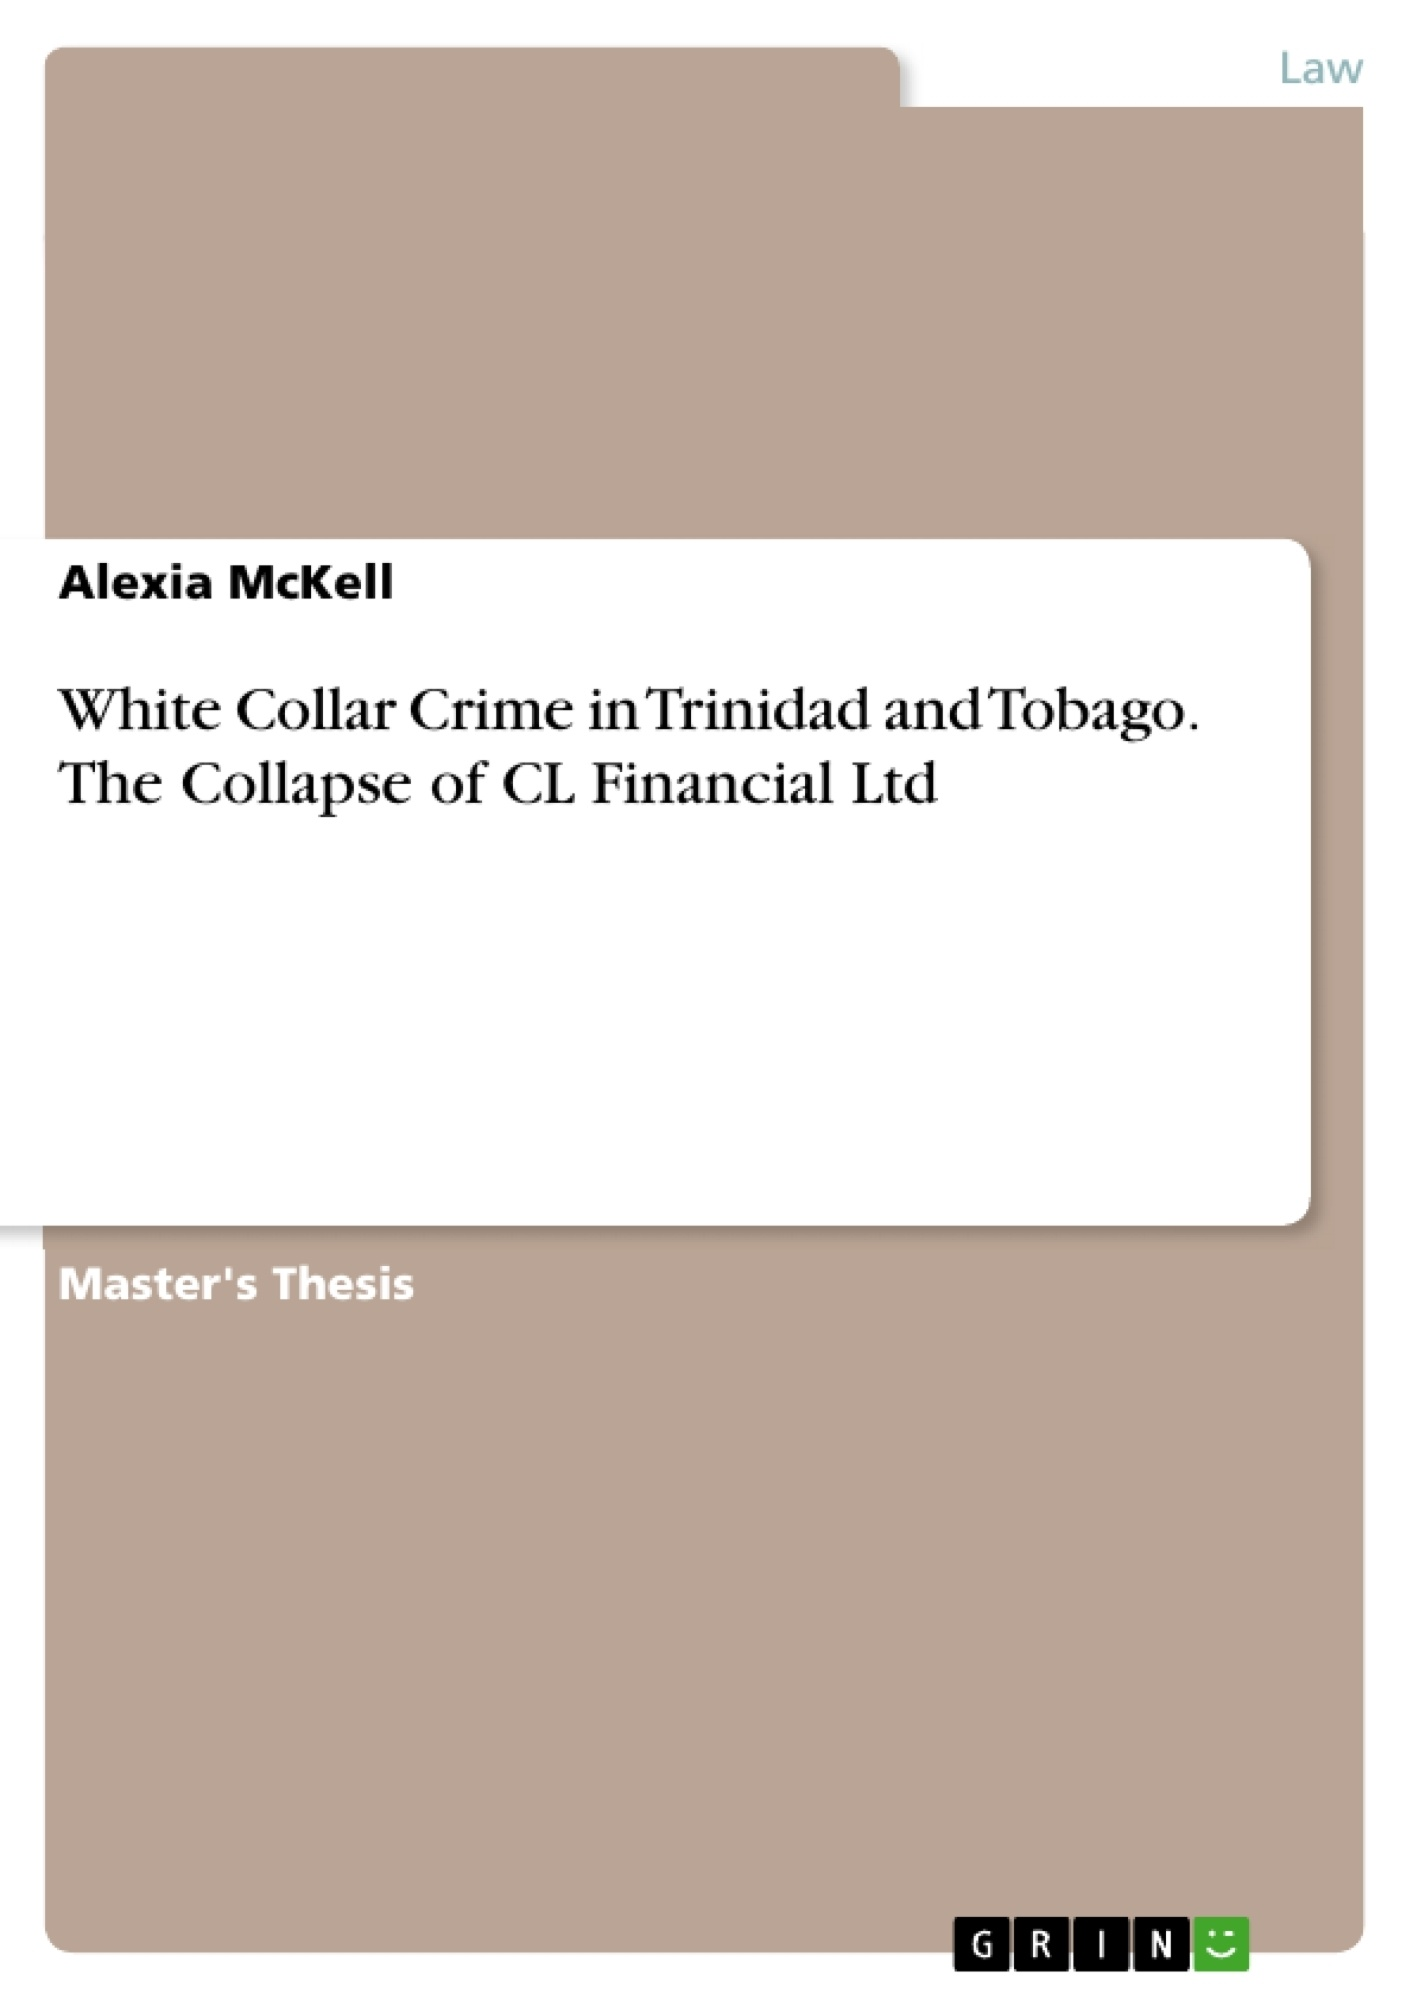 Title: White Collar Crime in Trinidad and Tobago. The Collapse of CL Financial Ltd